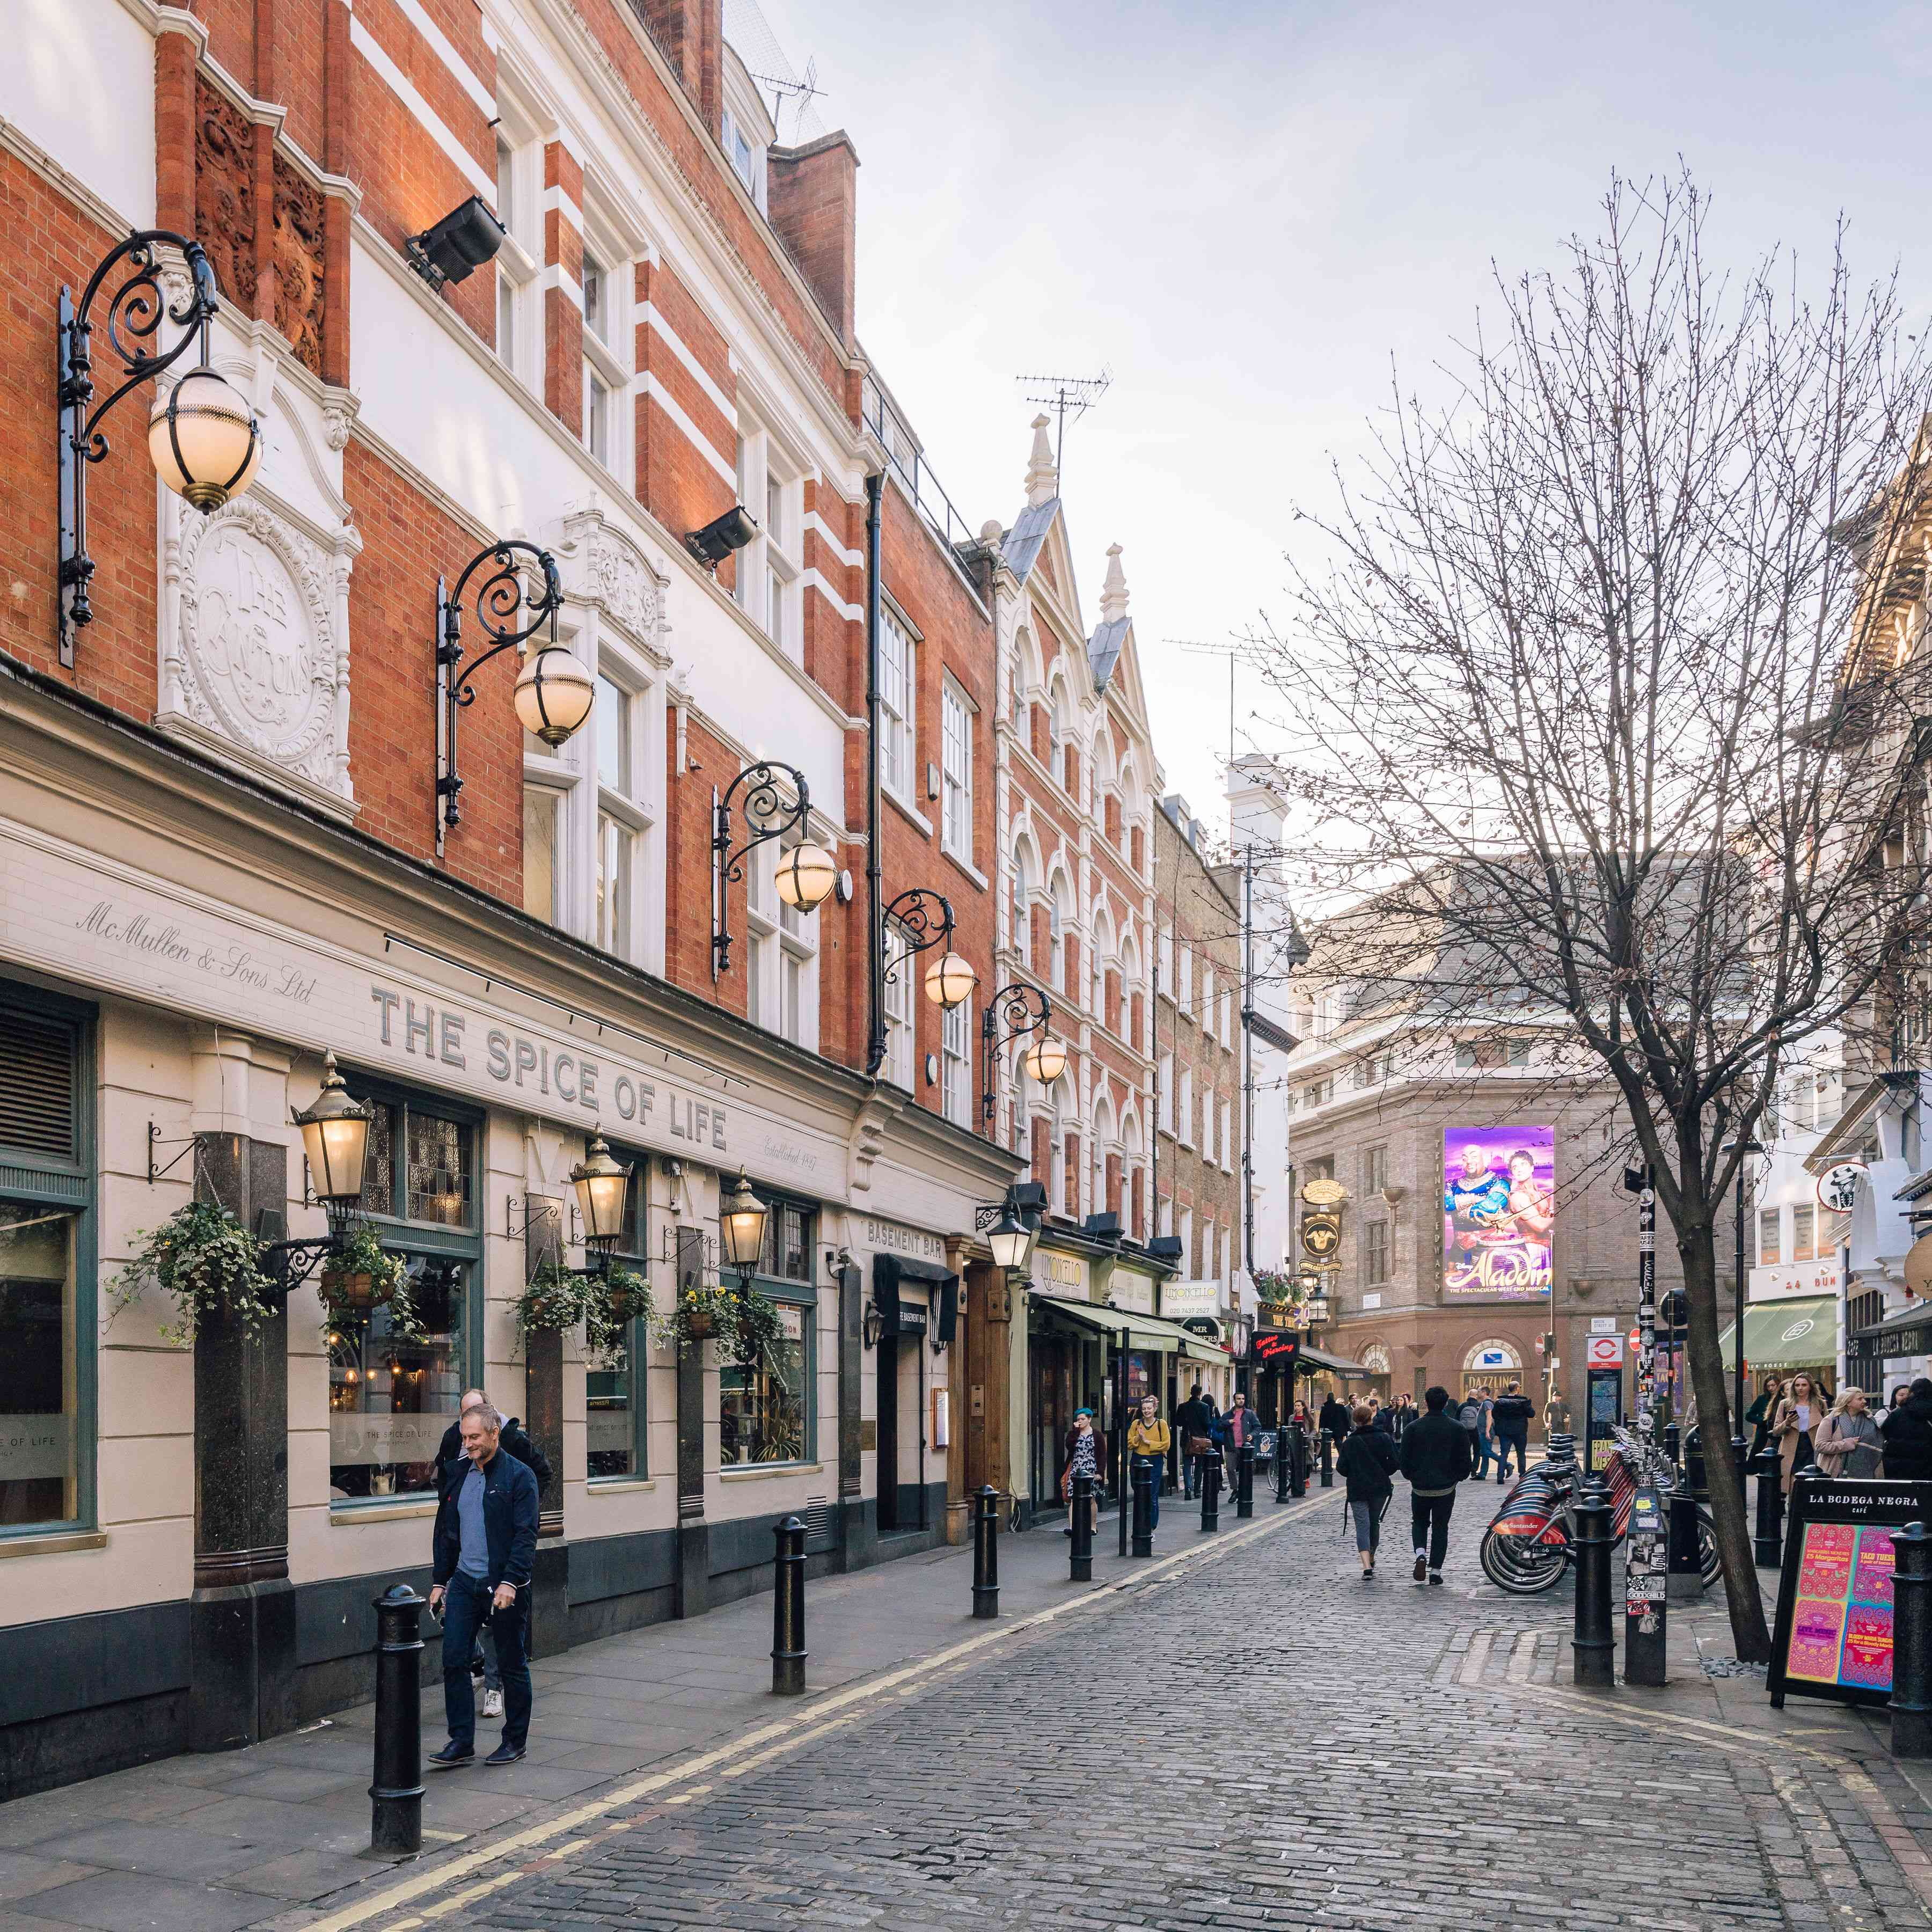 A cobble street in the West End of London